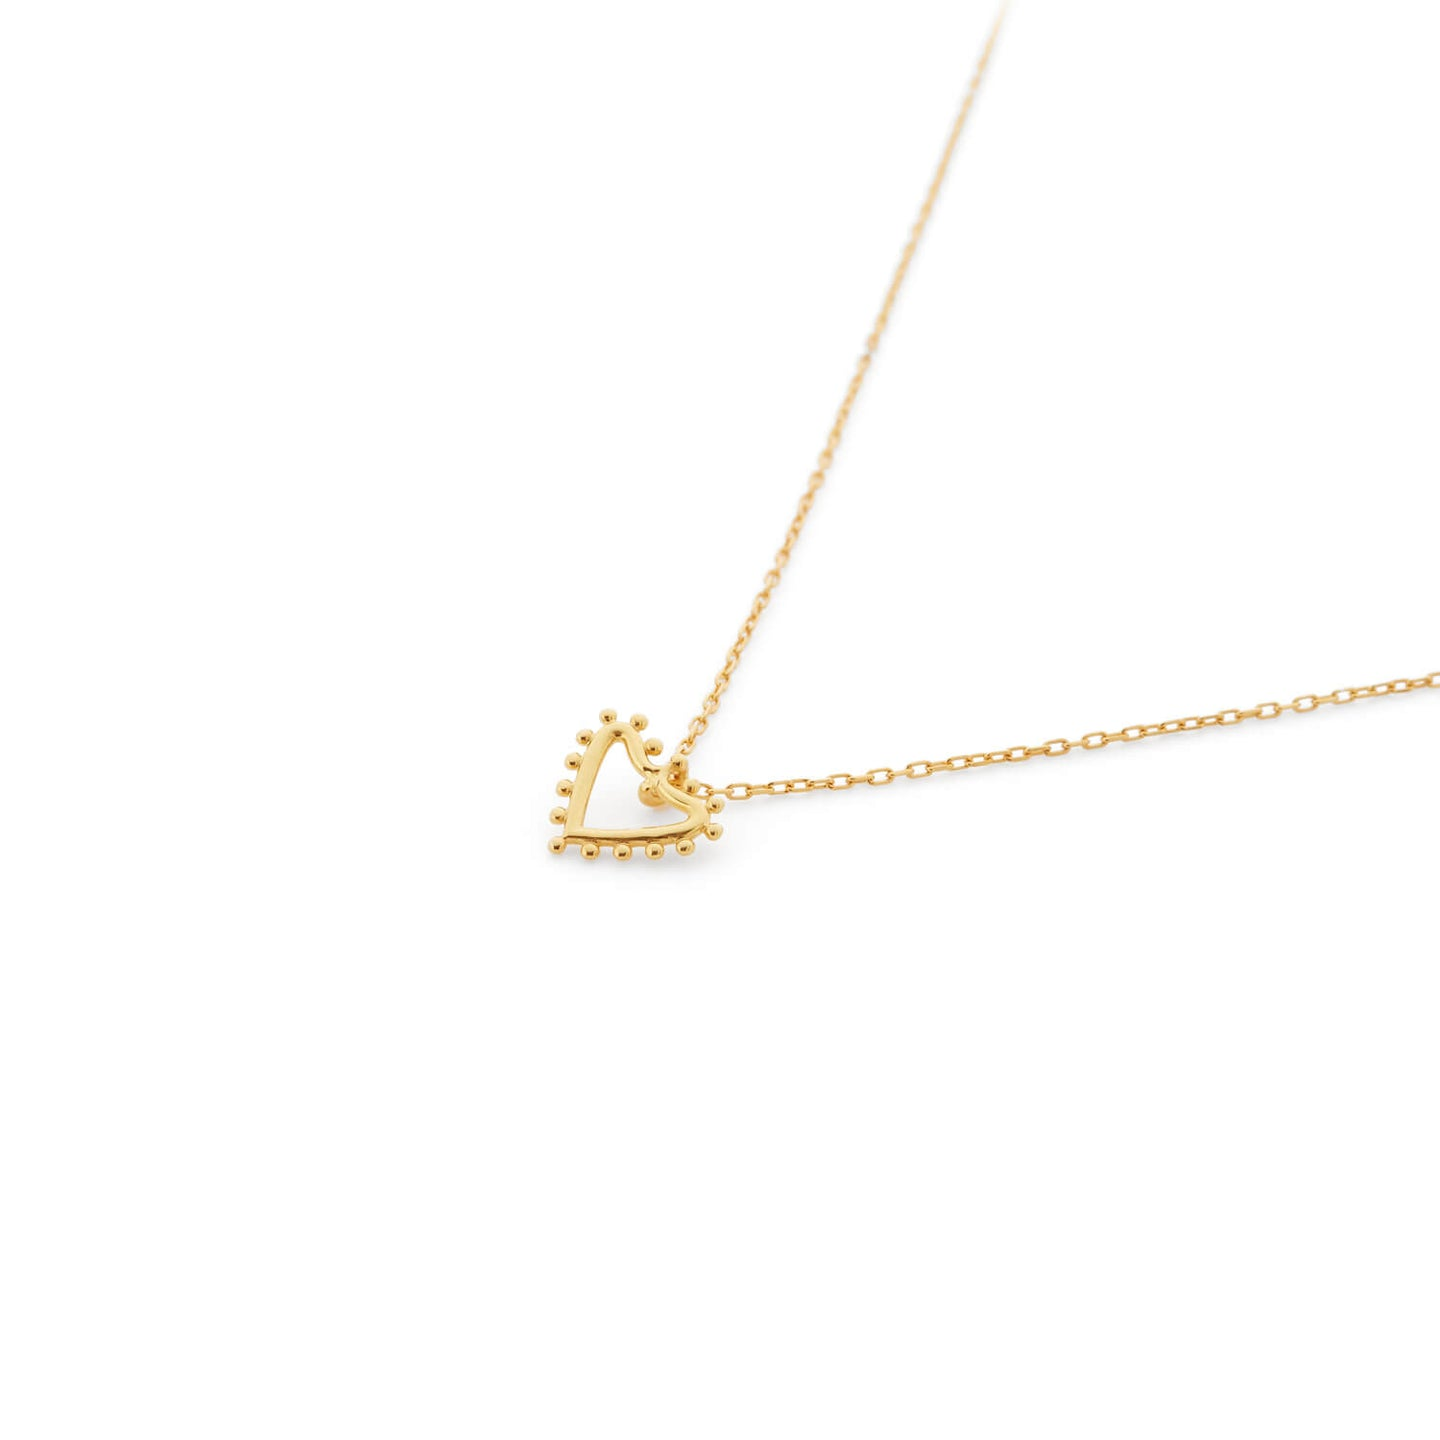 Utopia Necklace in Gold Vermeil